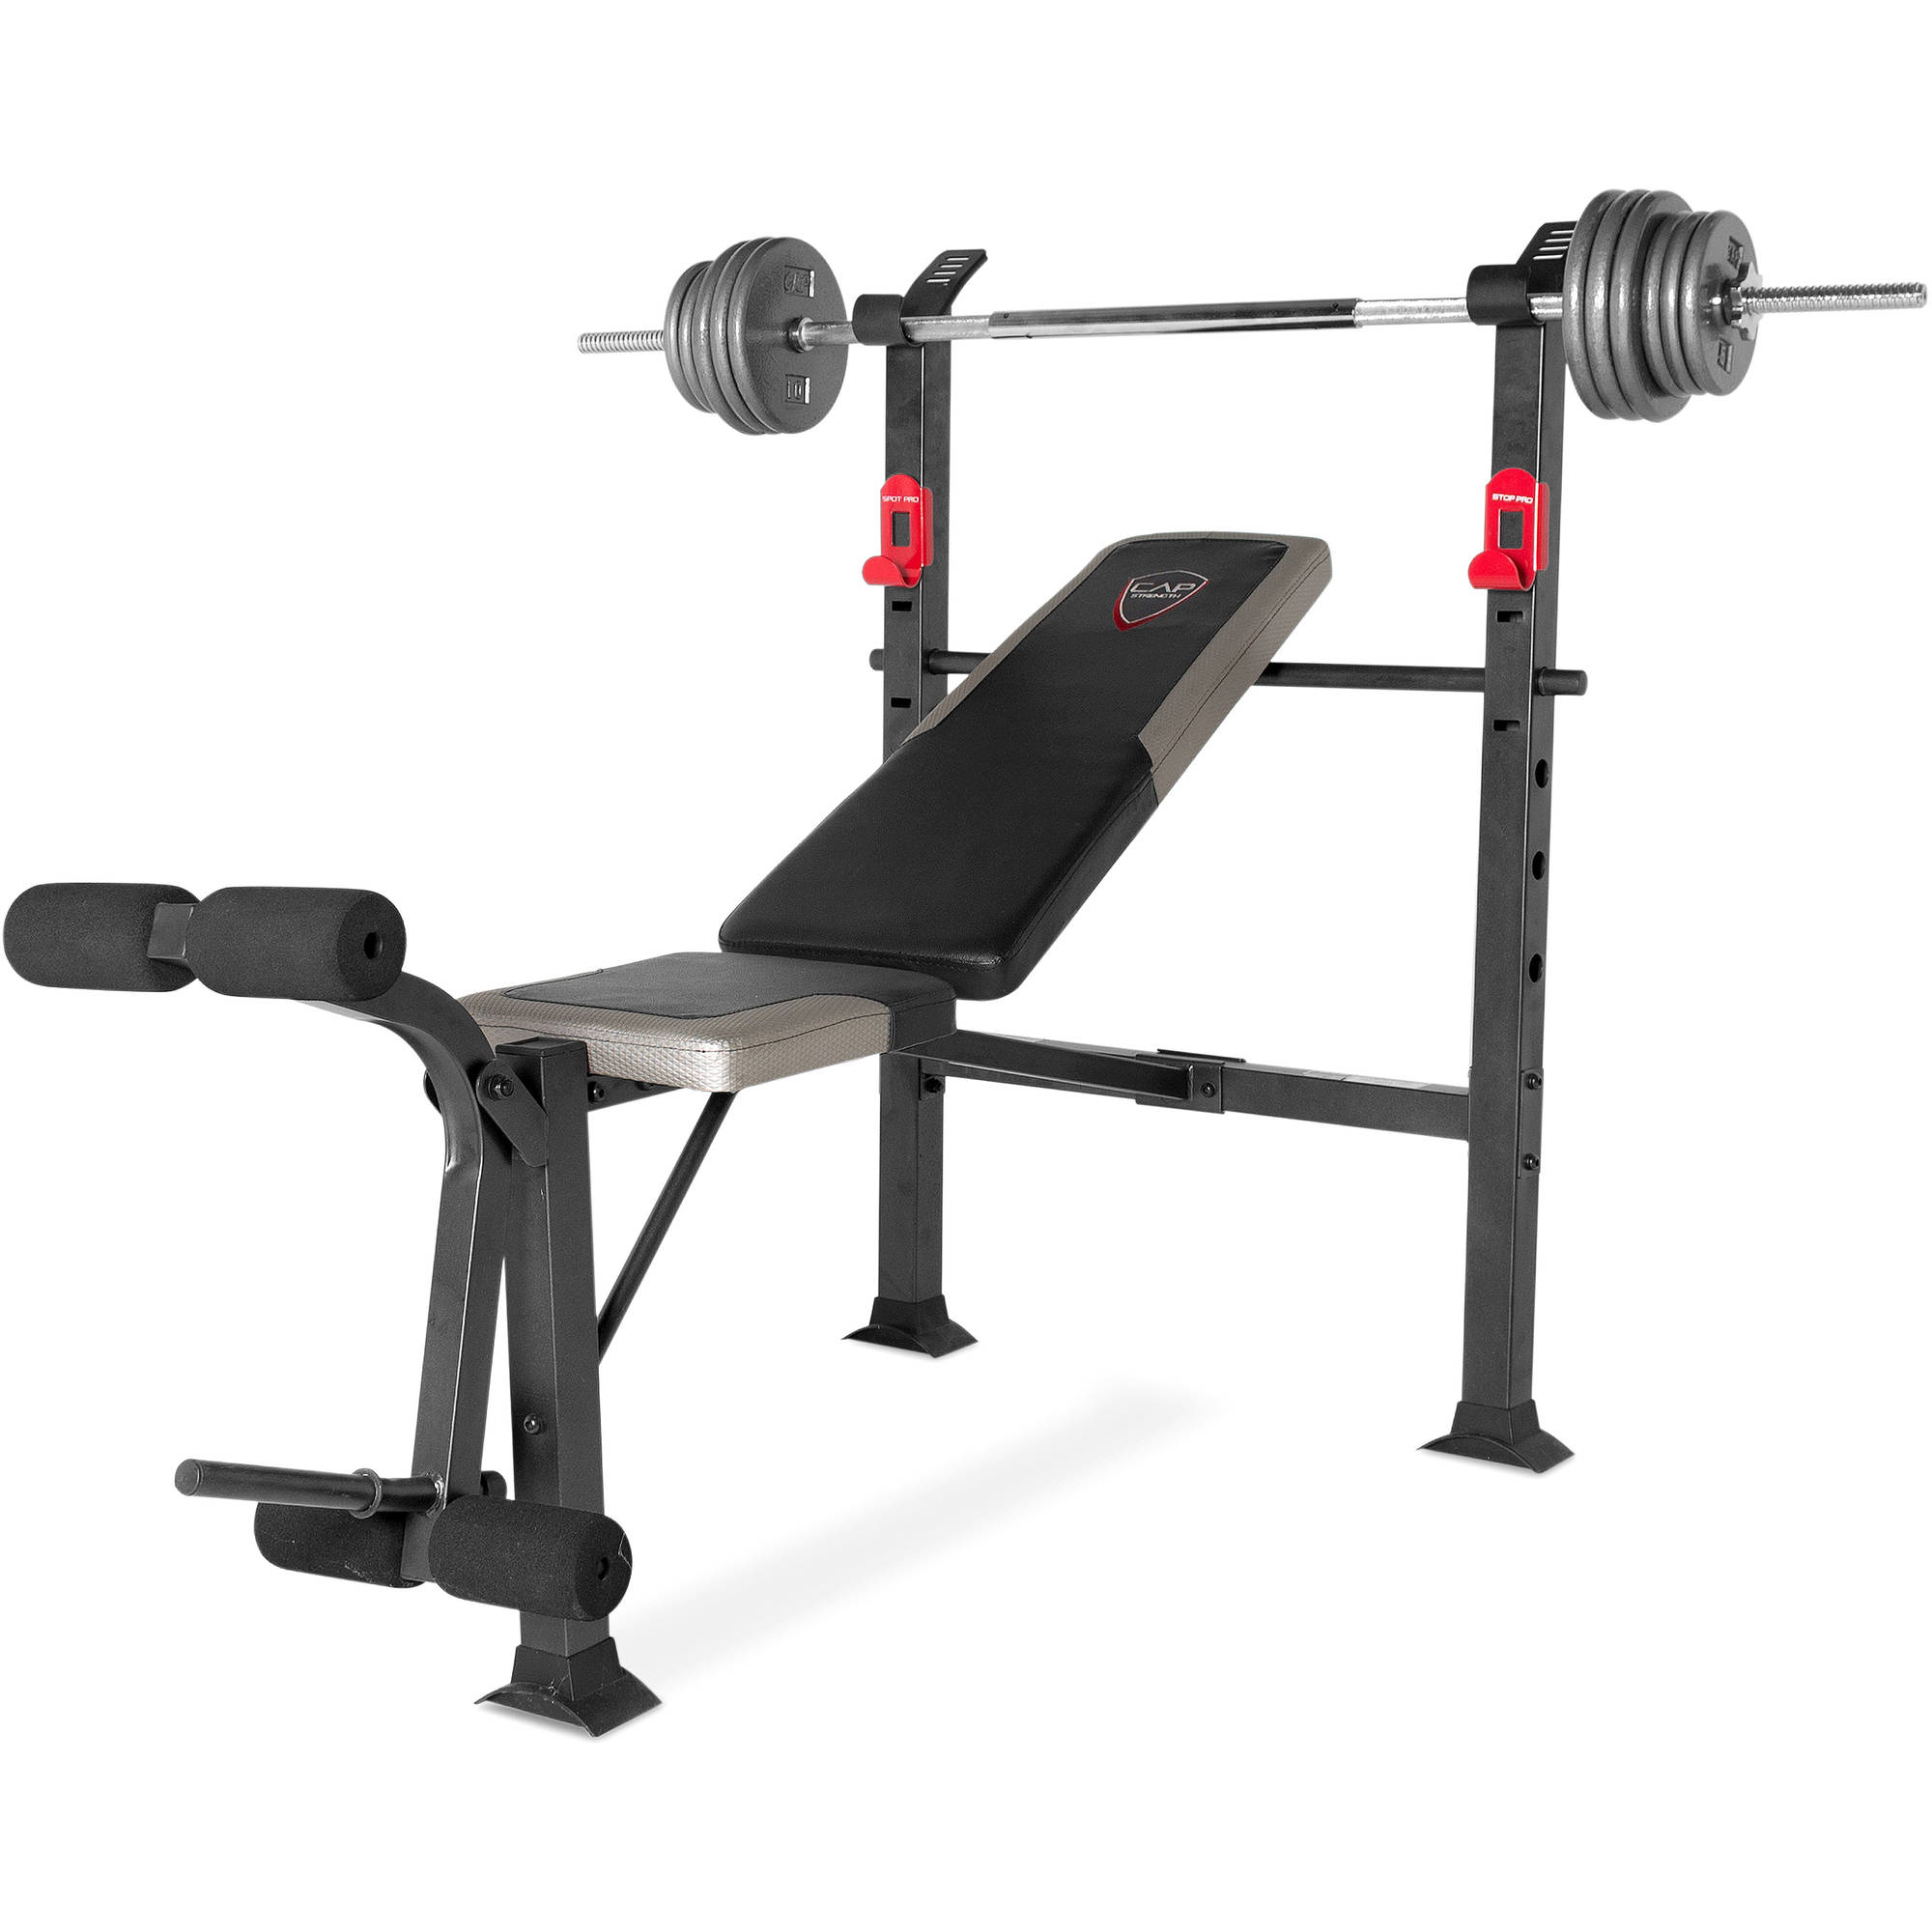 CAP Strength Deluxe Standard Bench with 100 lb Weight Set Walmartcom